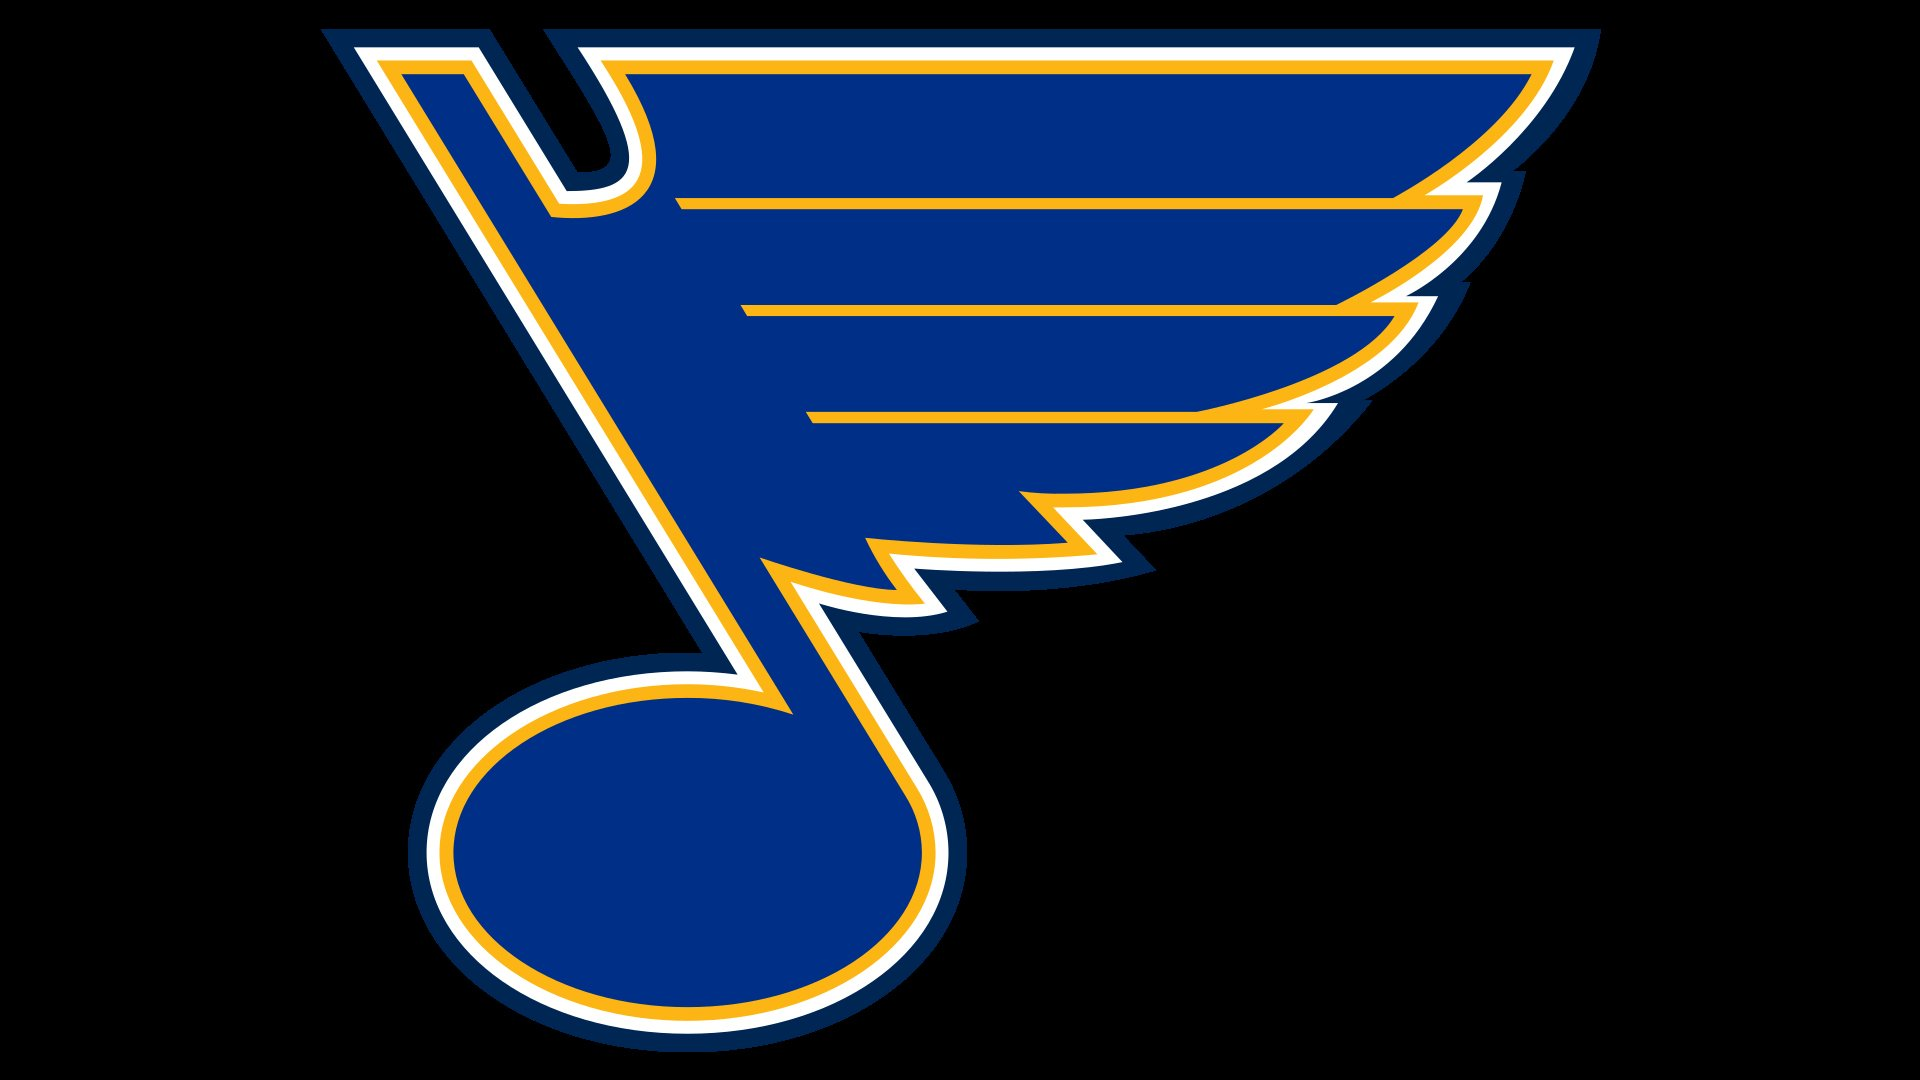 St. Louis Blues Logo, St. Louis Blues Symbol, Meaning ...